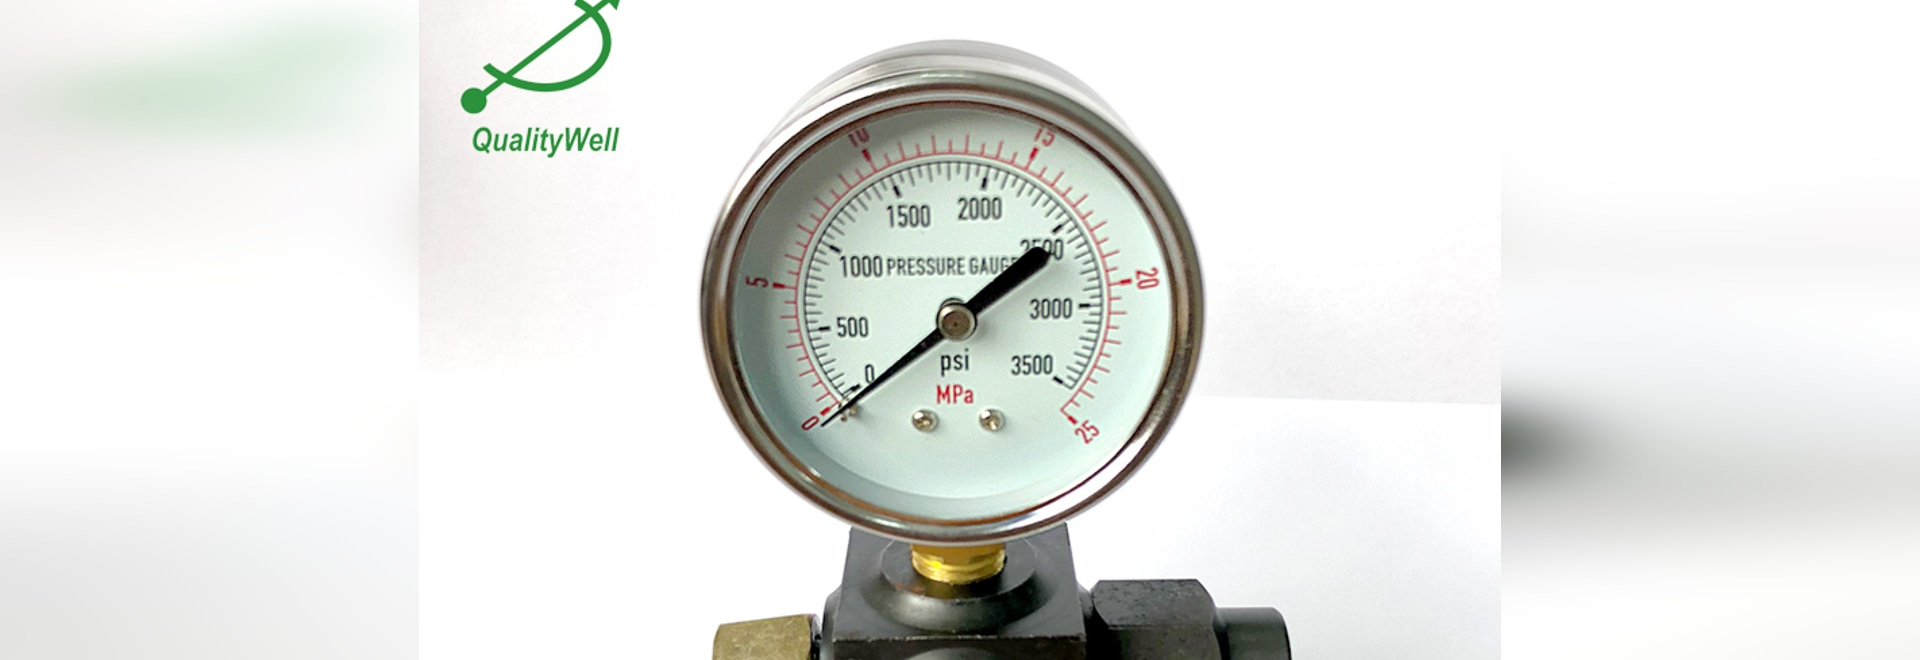 Maintenance of Pressure Gauge